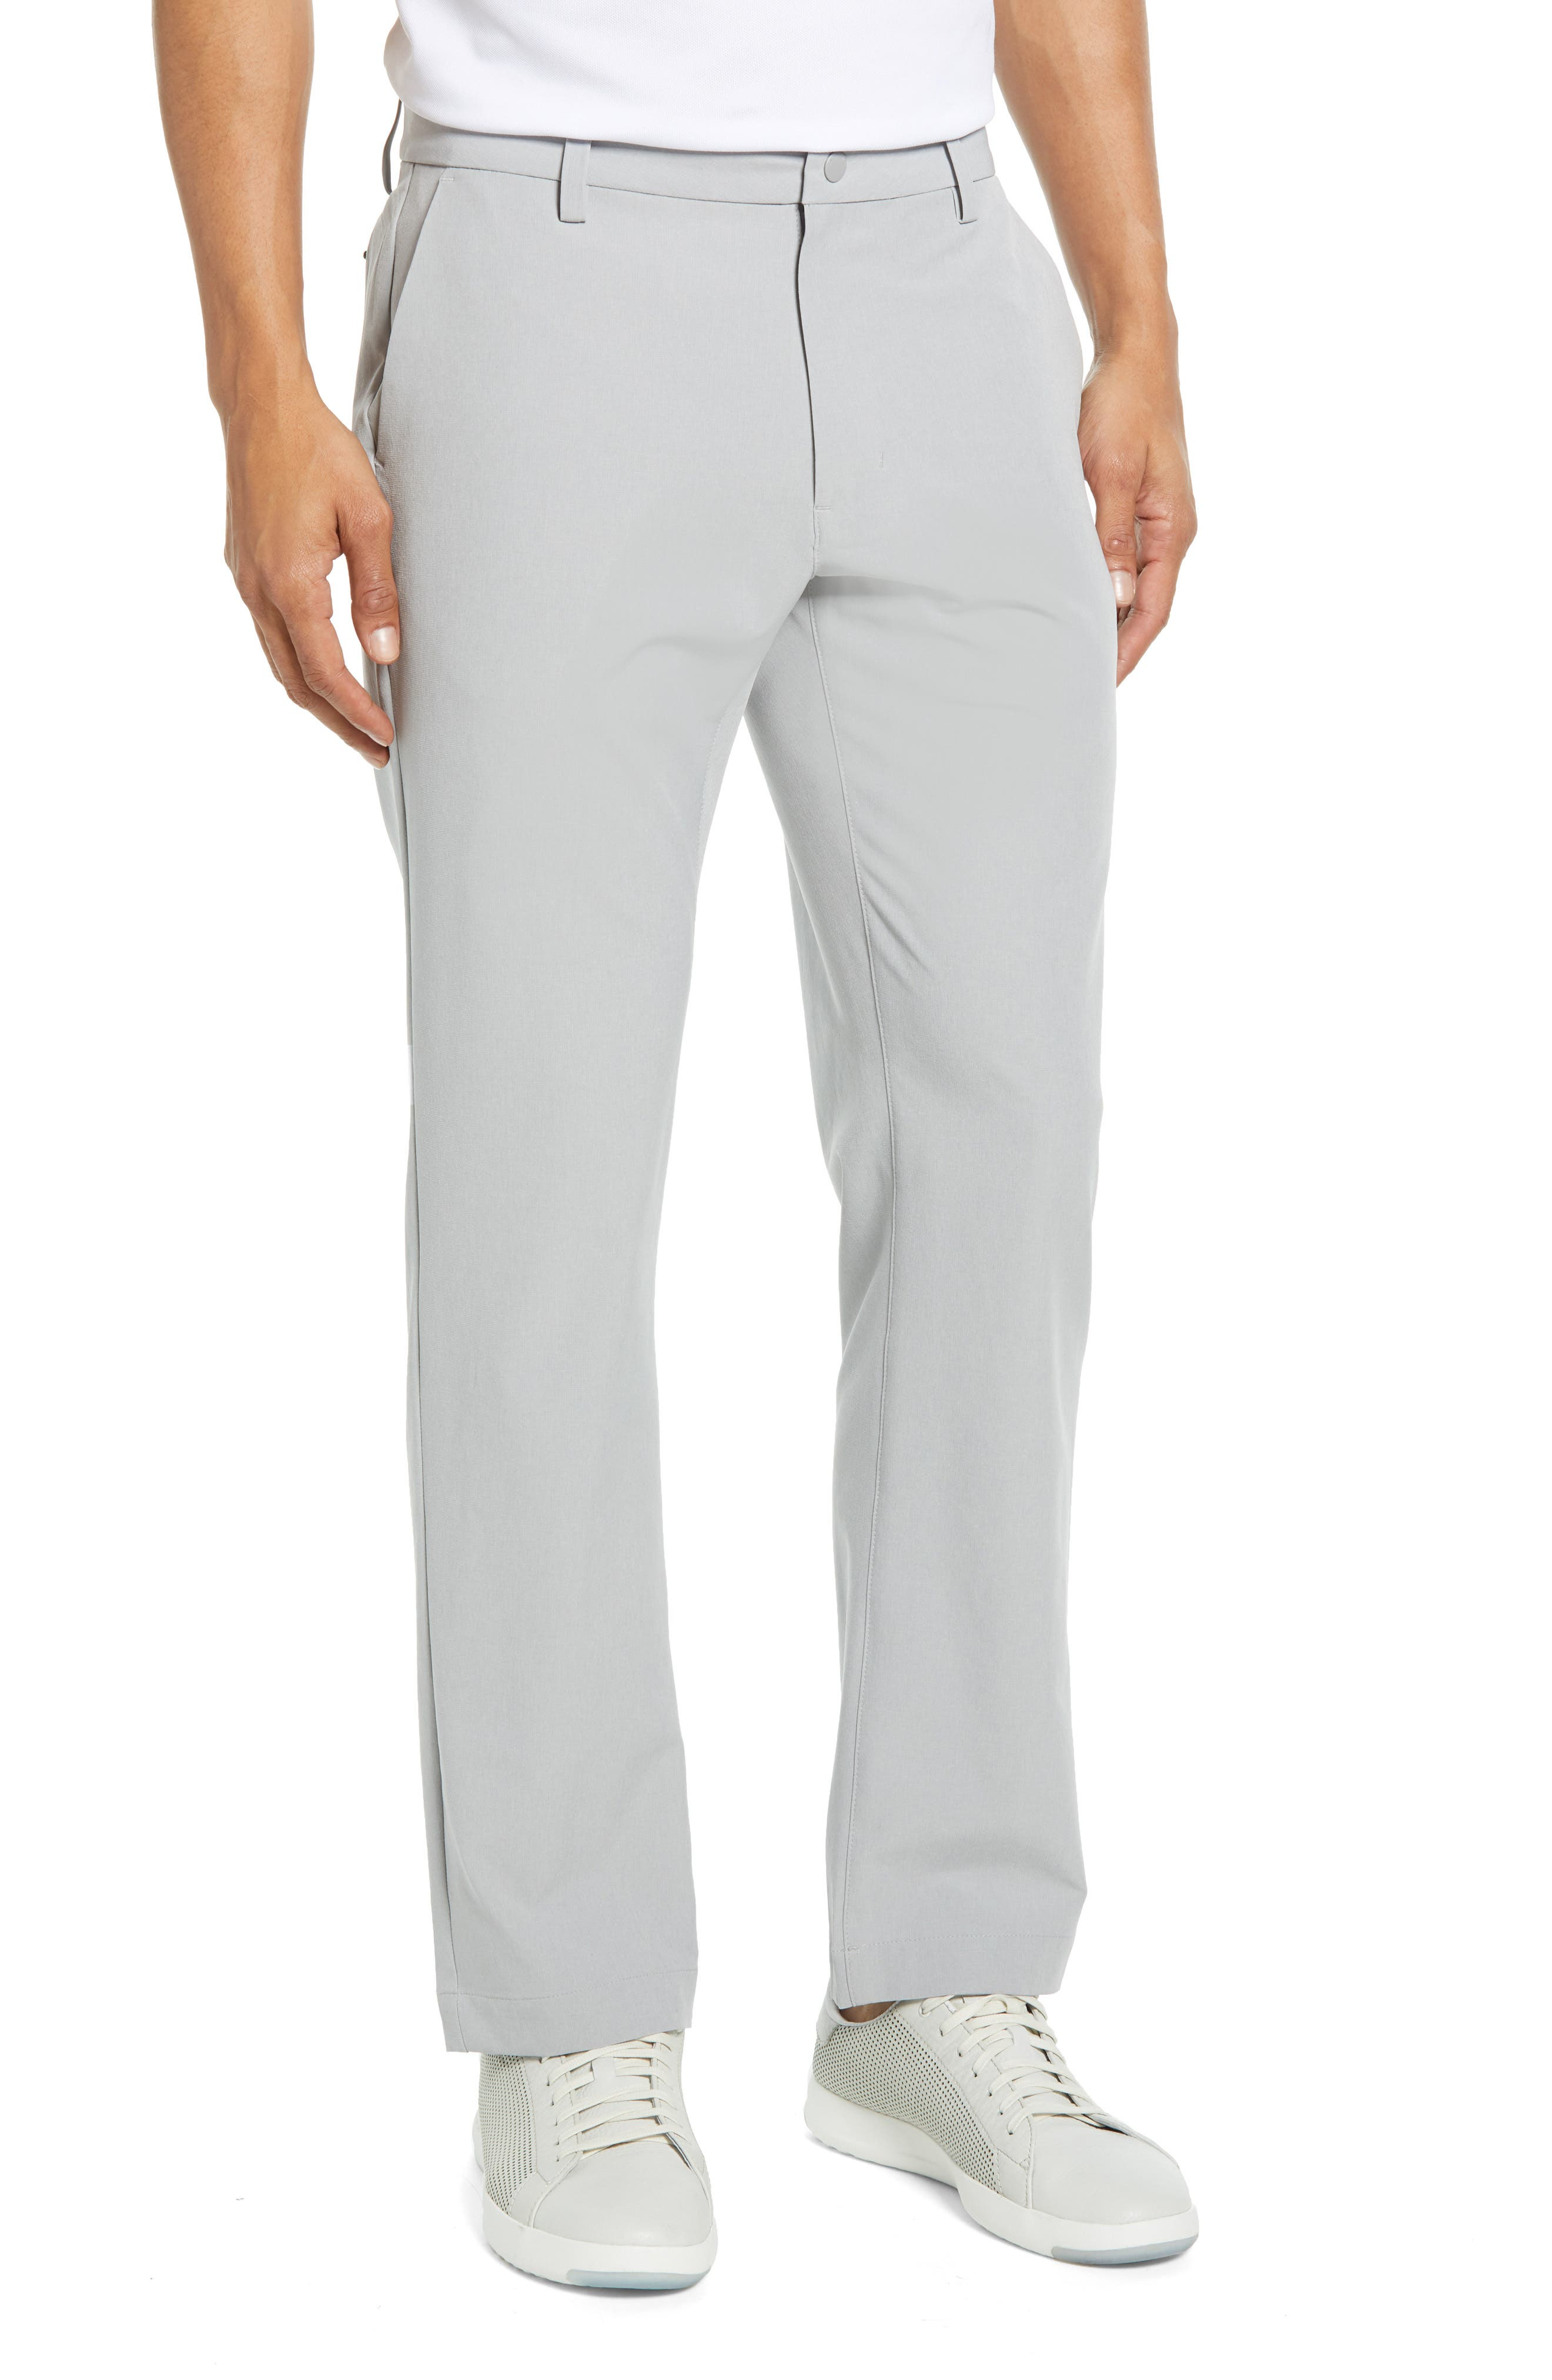 Modern technicality updates these chino-style straight-leg pants cut from light DryTec fabric with motion-friendly stretch, UV protection and sweat-wicking. Style Name: Cutter & Buck Bainbridge Straight Leg Performance Pants. Style Number: 5823148. Available in stores.